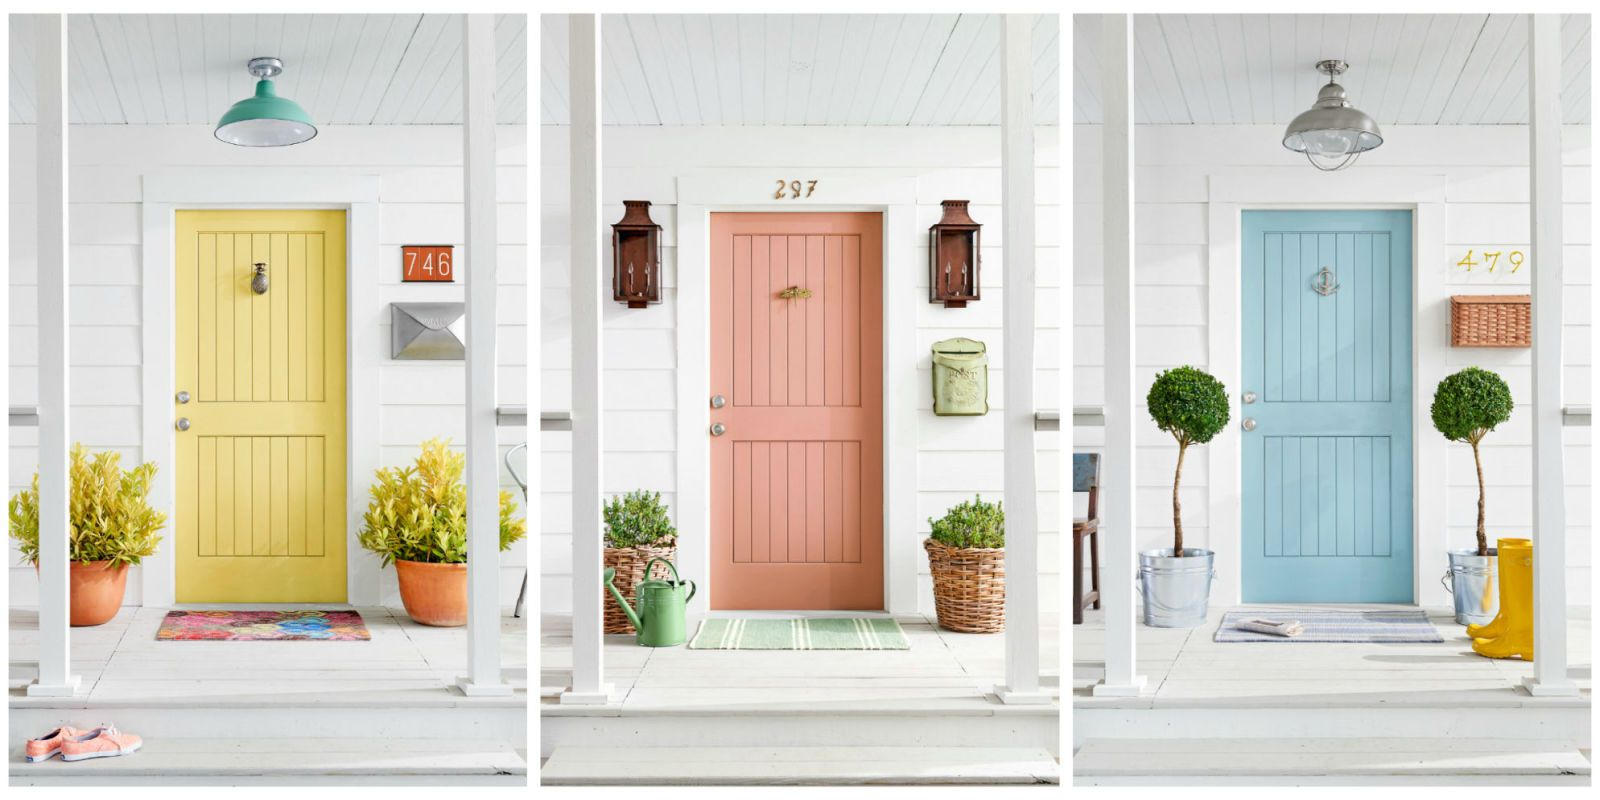 Whether Itu0027s Seafoam Green Or Fire Engine Red, Painting Your Front Door A  Bold Color Makes A Statement. Find Out What Yours Says About You, ...